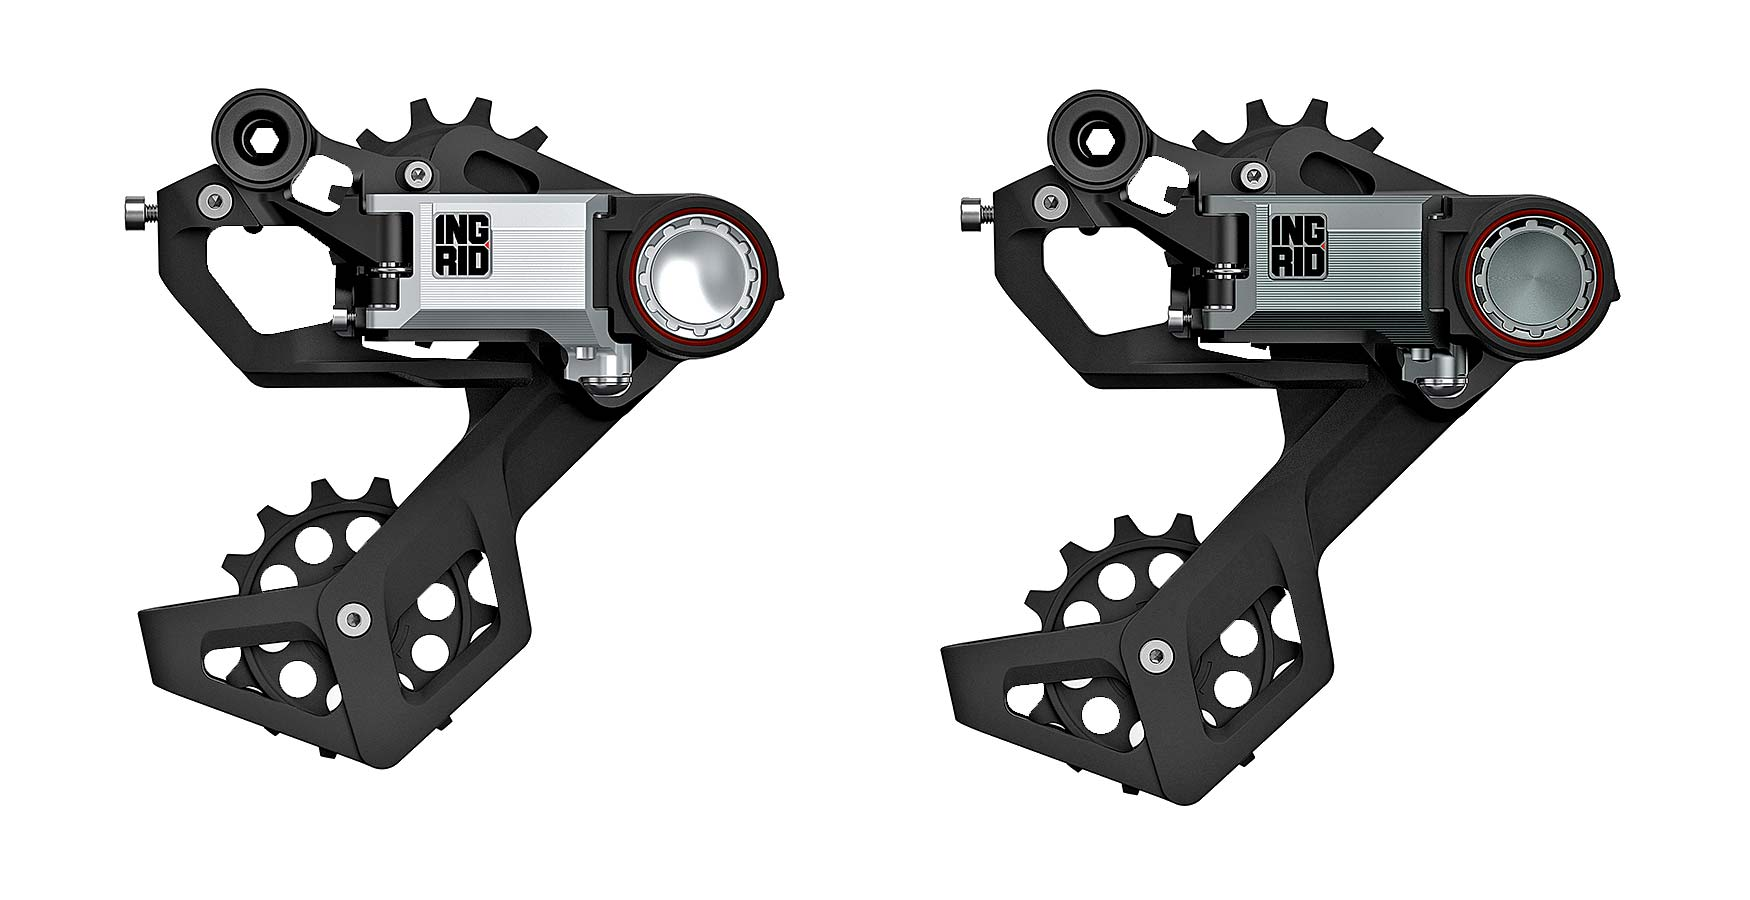 Ingrid Gran Turismo R 1x 11 12-speed road bike drivetrain, made-in-Italy, short or long cage rear derailleurs